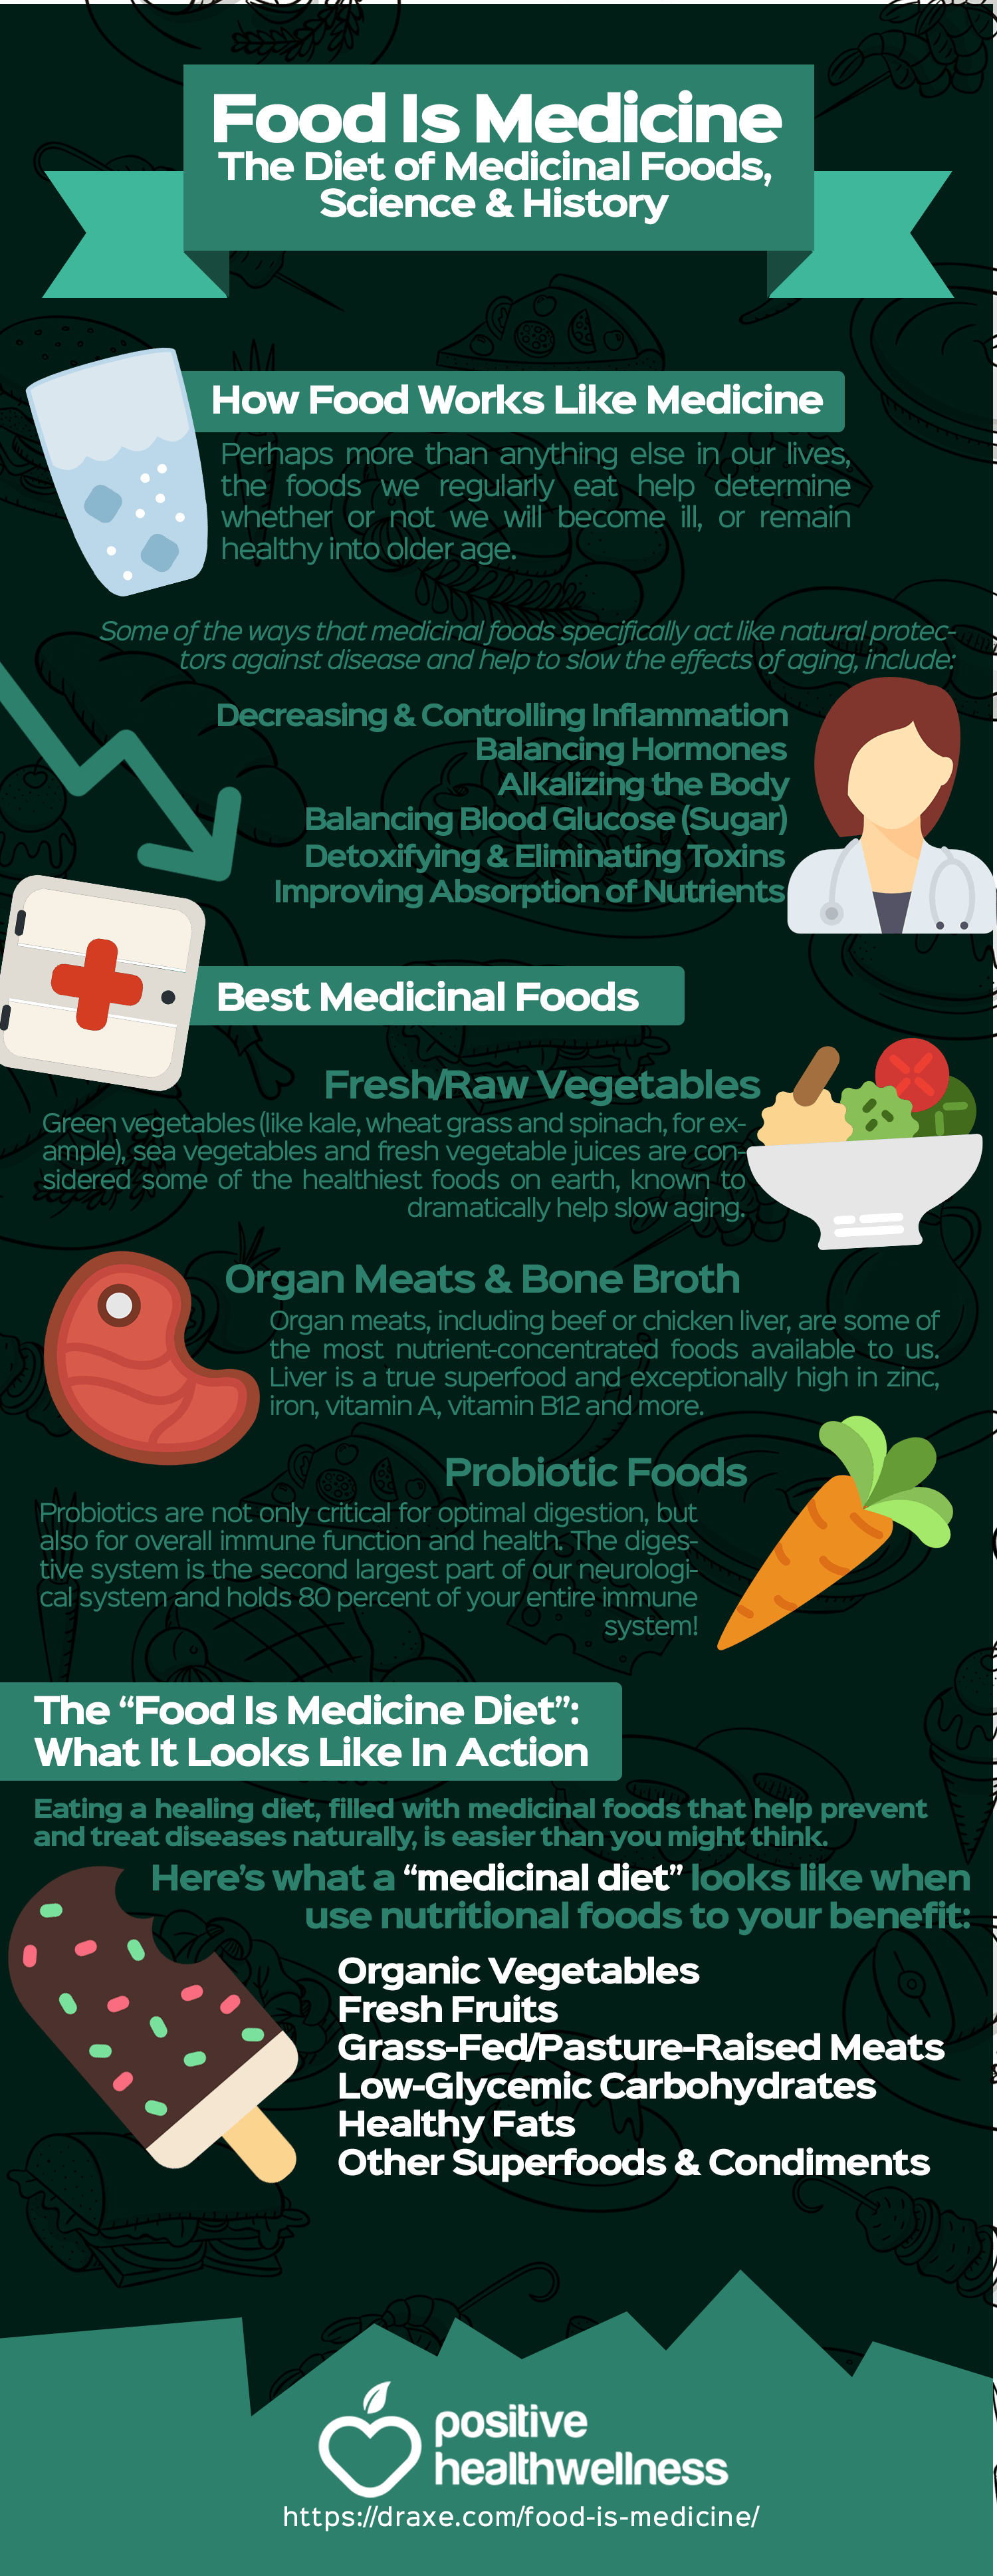 Food Is Medicine: The Diet of Medicinal Foods, Science & History